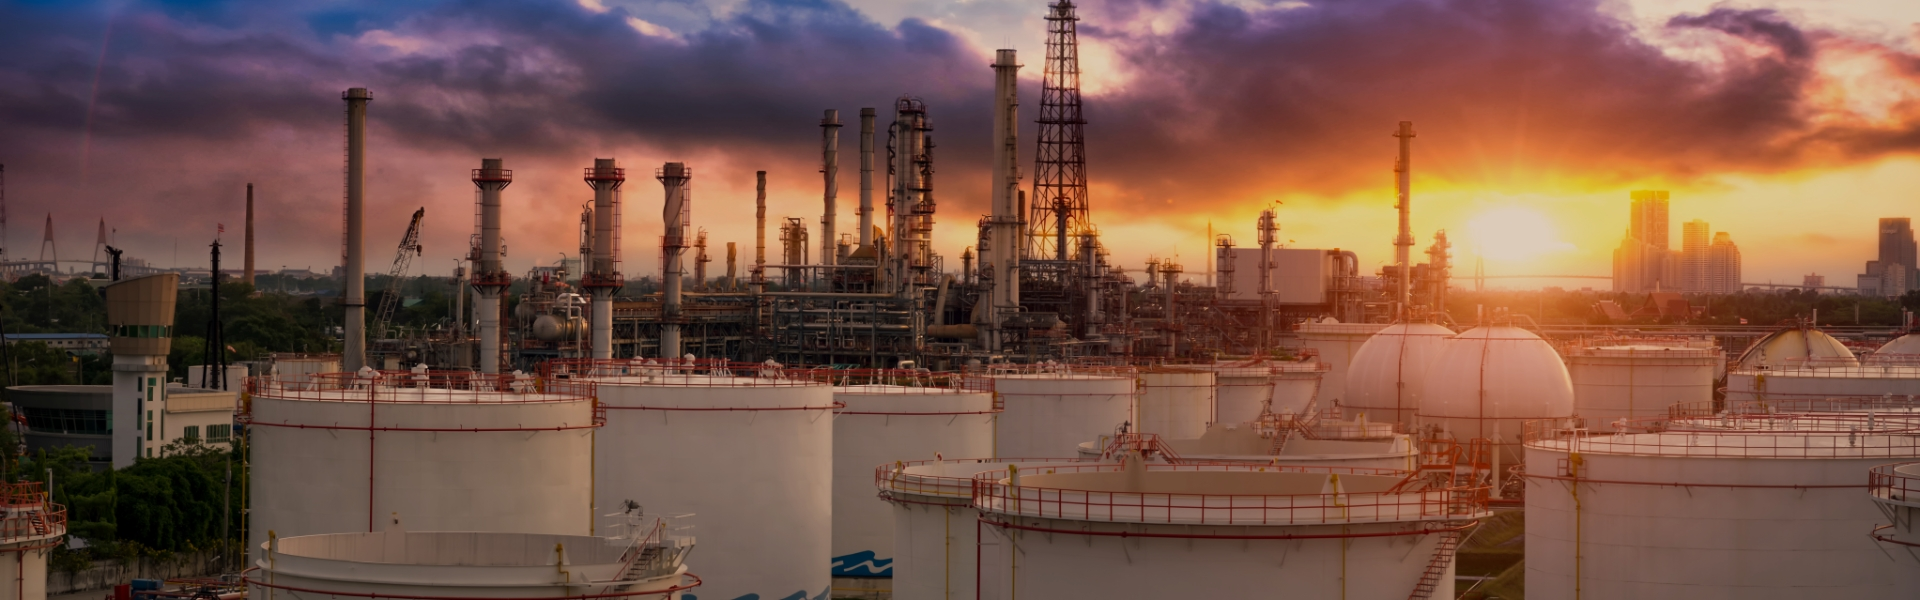 Genesis Endeavors is a leading oilfield services provider